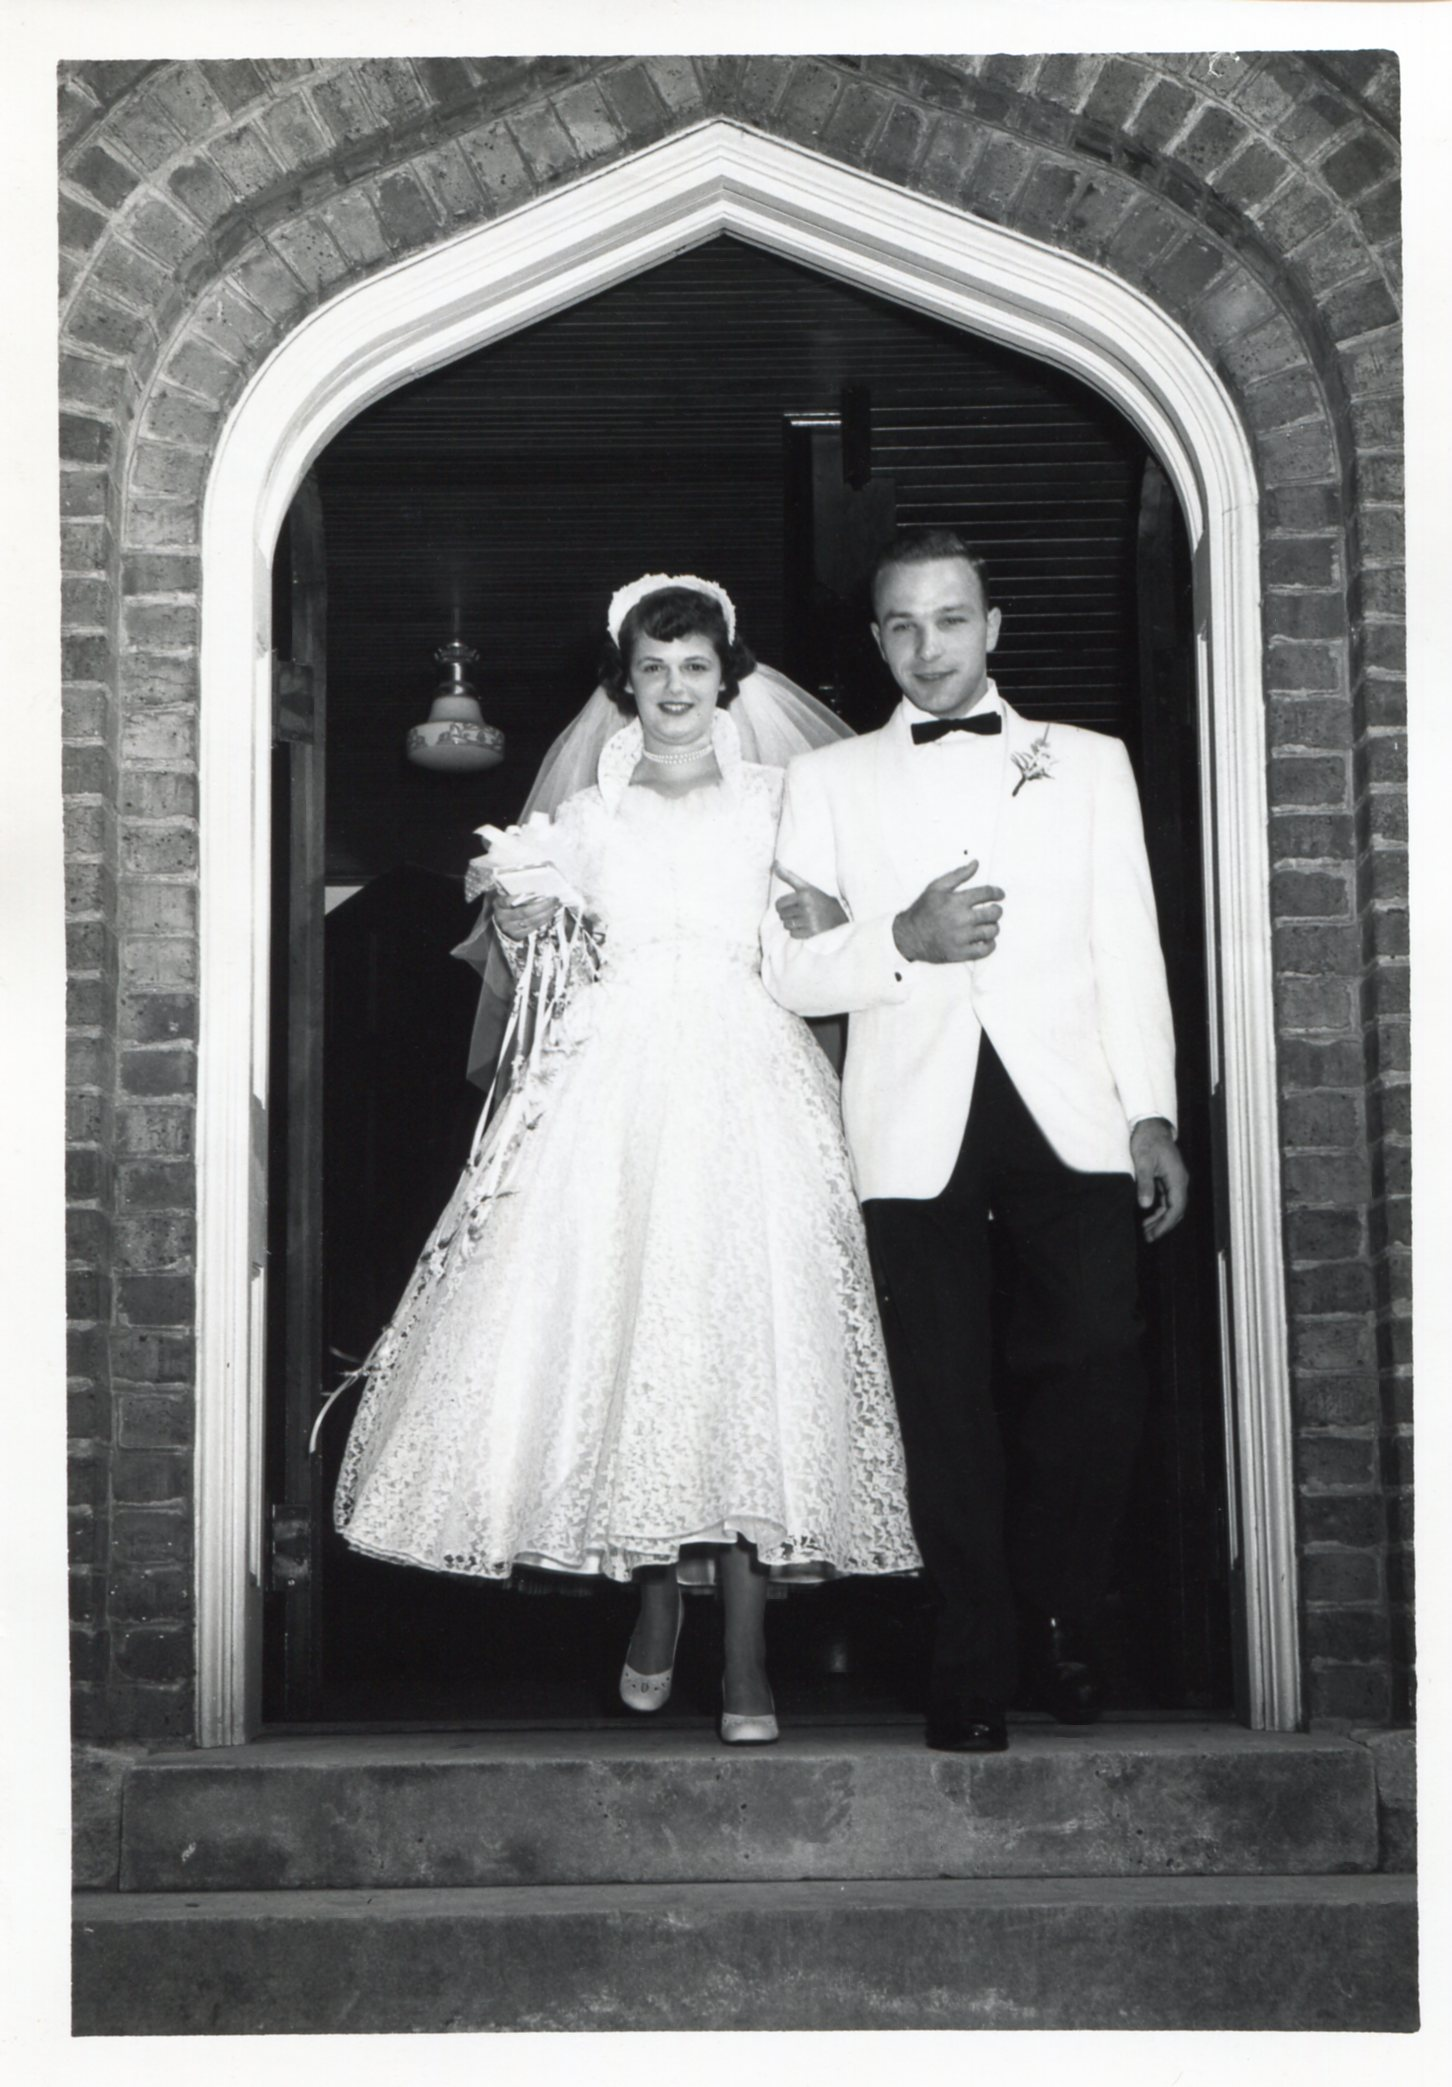 The Marriage of Dot & Bill, Blacksburg, VA. 22 August 1953.